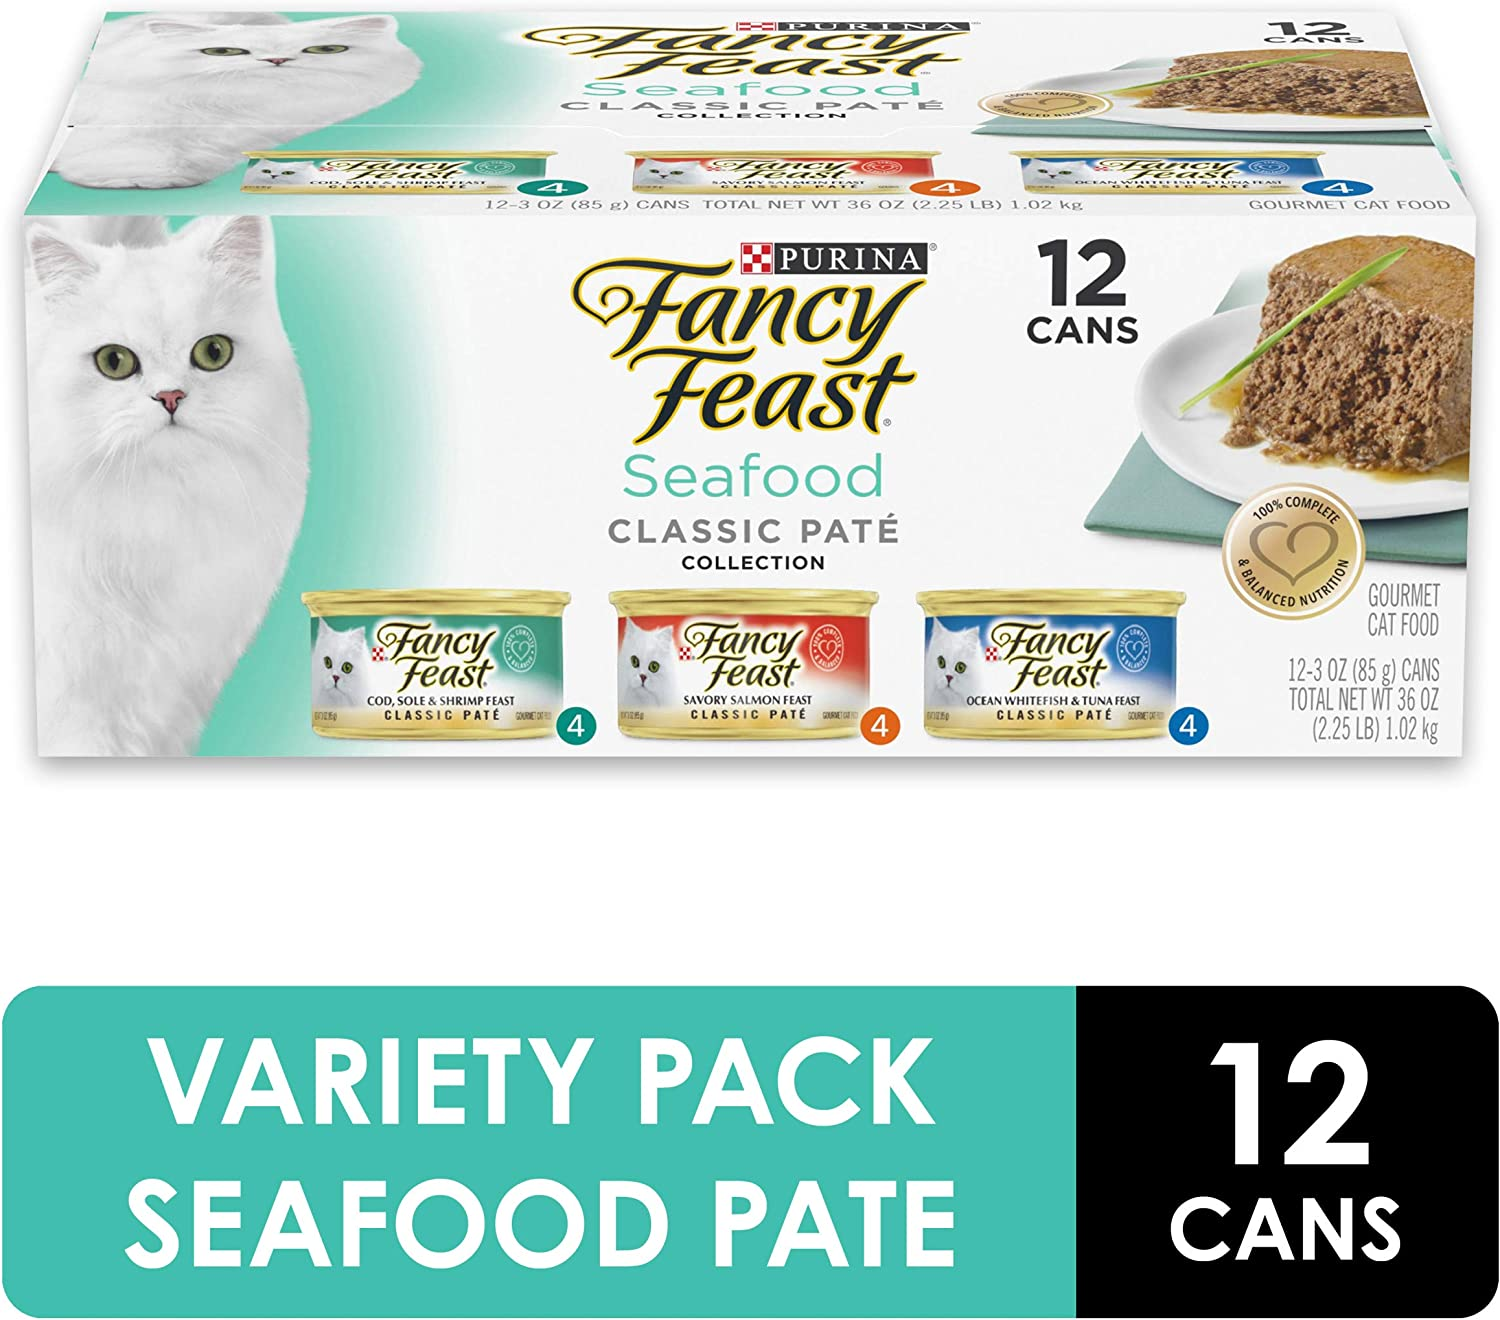 Purina Fancy Feast Grain Free Pate Wet Cat Food Variety Pack, Seafood Classic Pate Collection